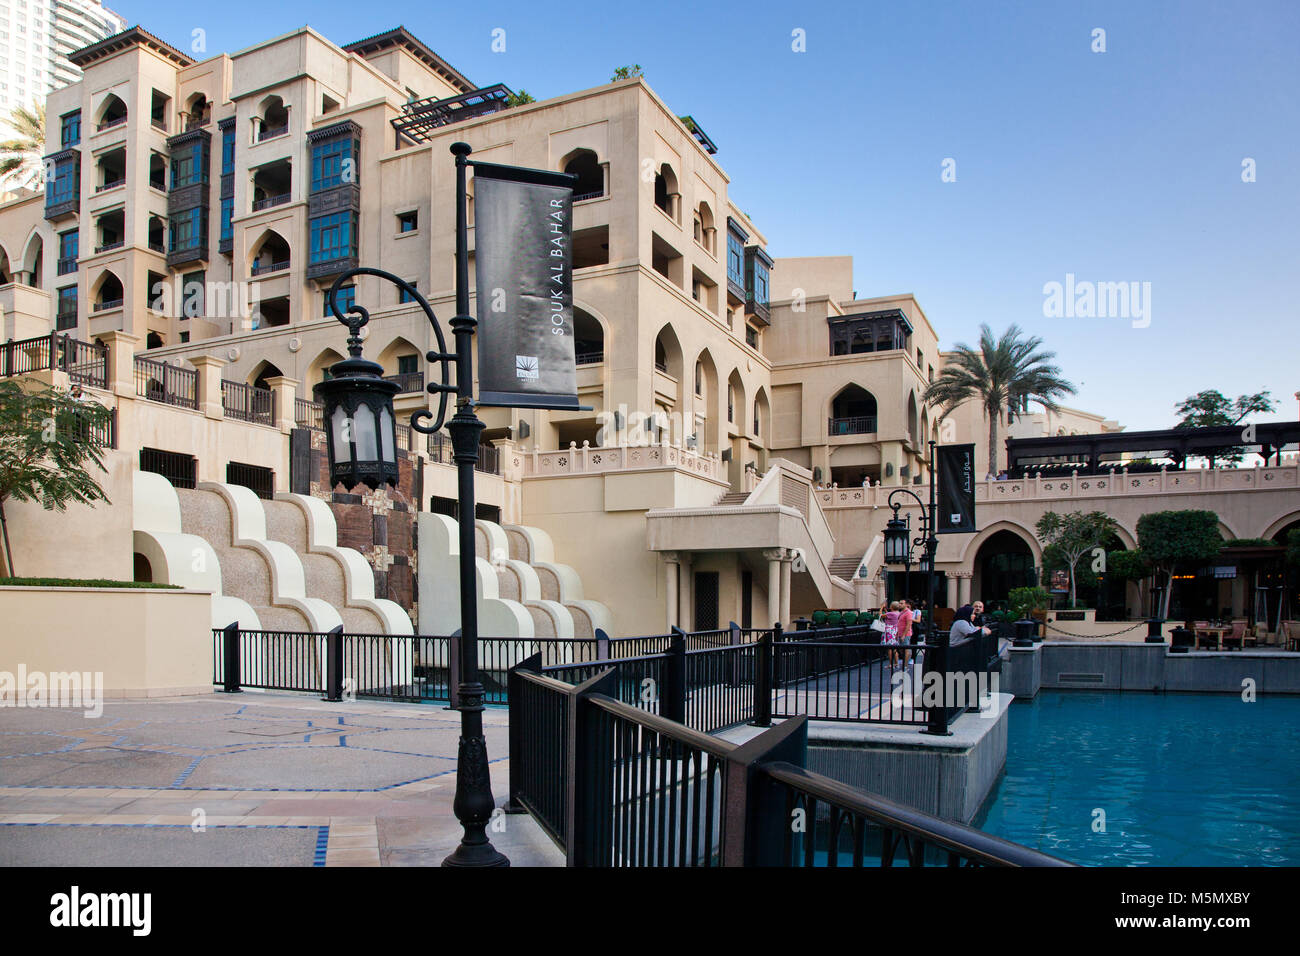 628b14d7b80 Souk Al Bahar Stock Photos   Souk Al Bahar Stock Images - Page 3 - Alamy